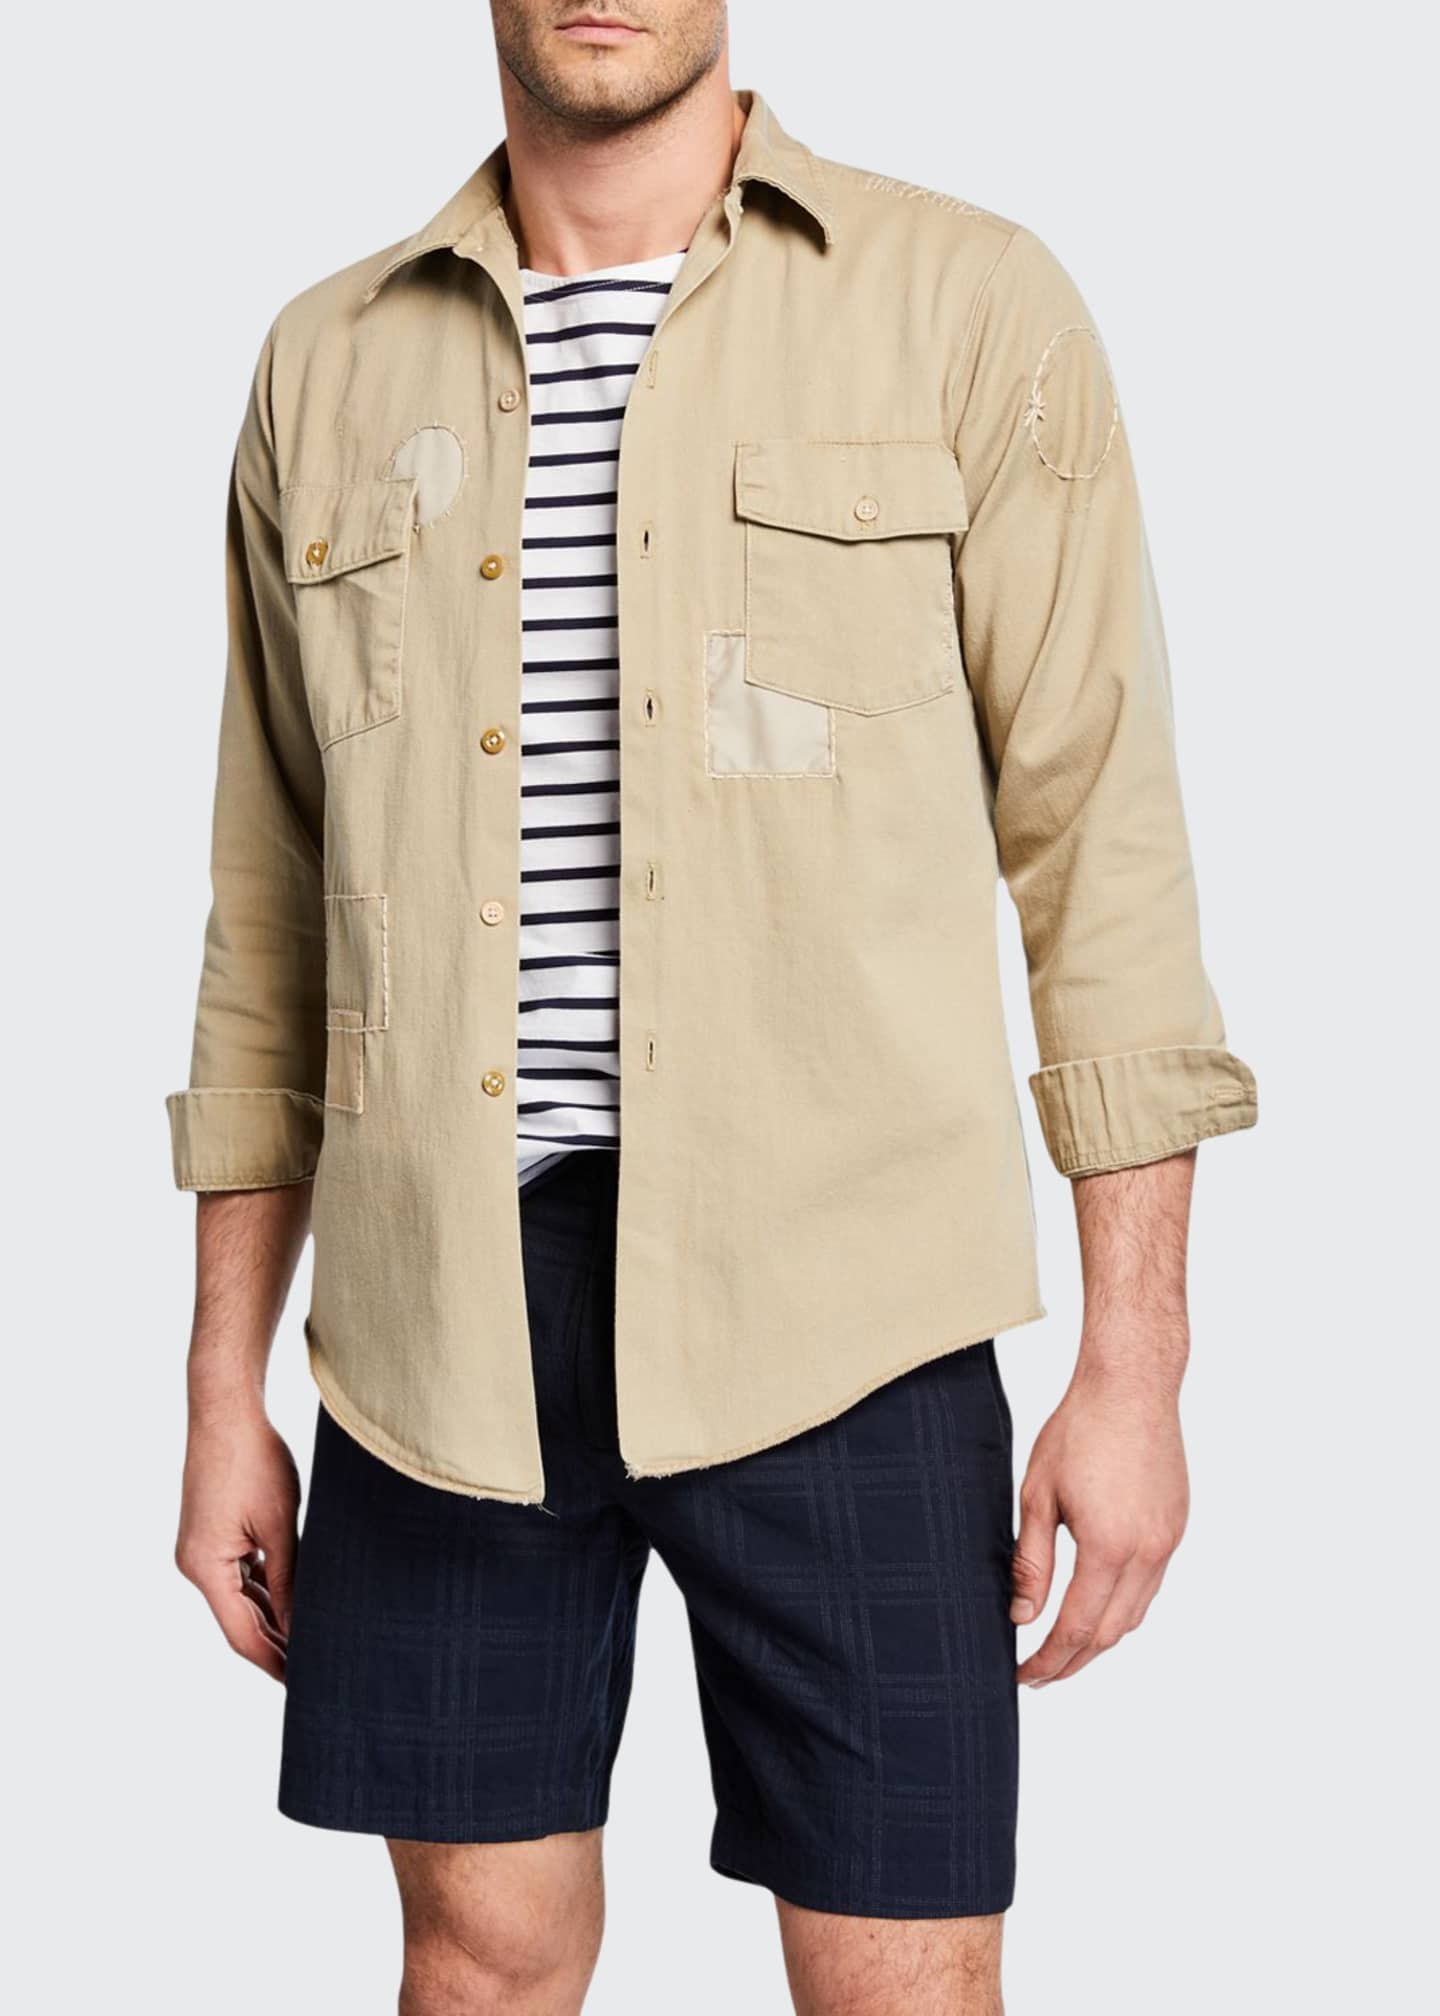 Atelier & Repairs Men's The Pan-Am Patchwork Twill